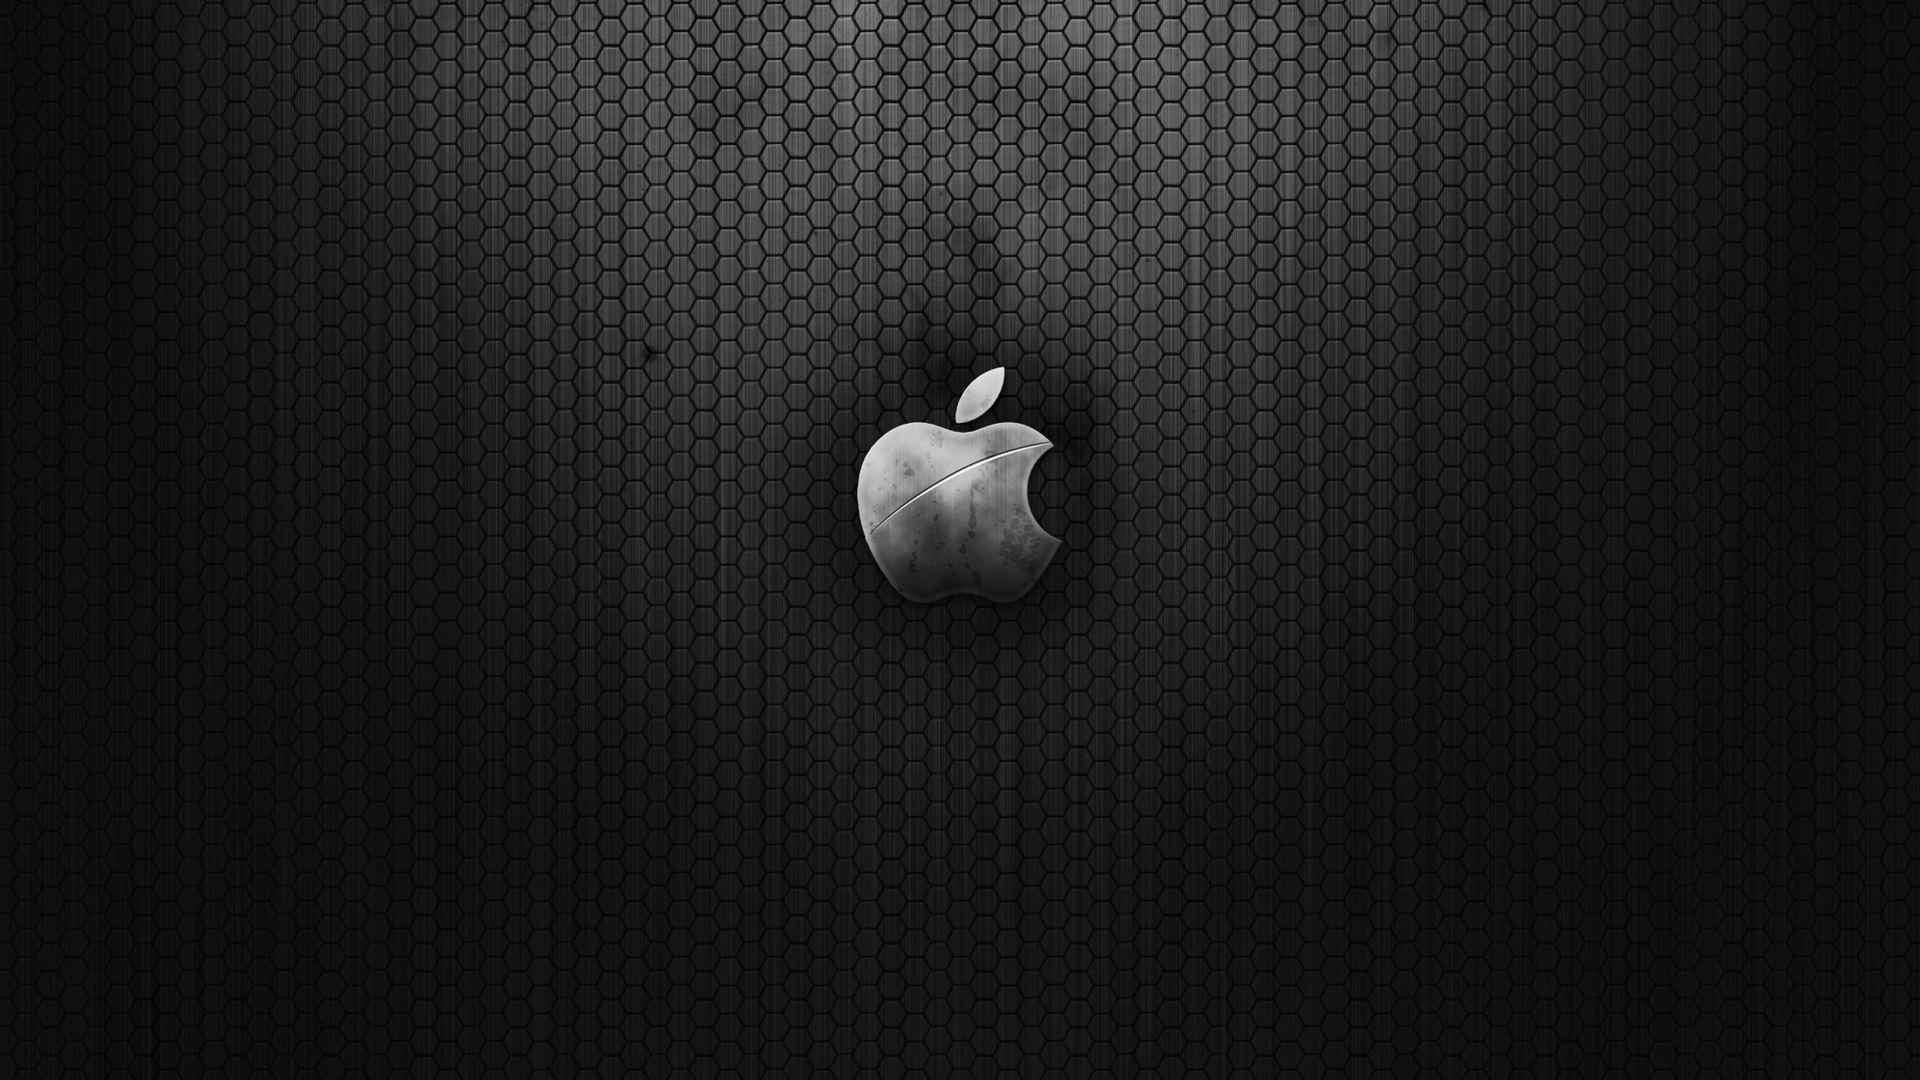 Apple Hd 1080p Wallpapers And Background